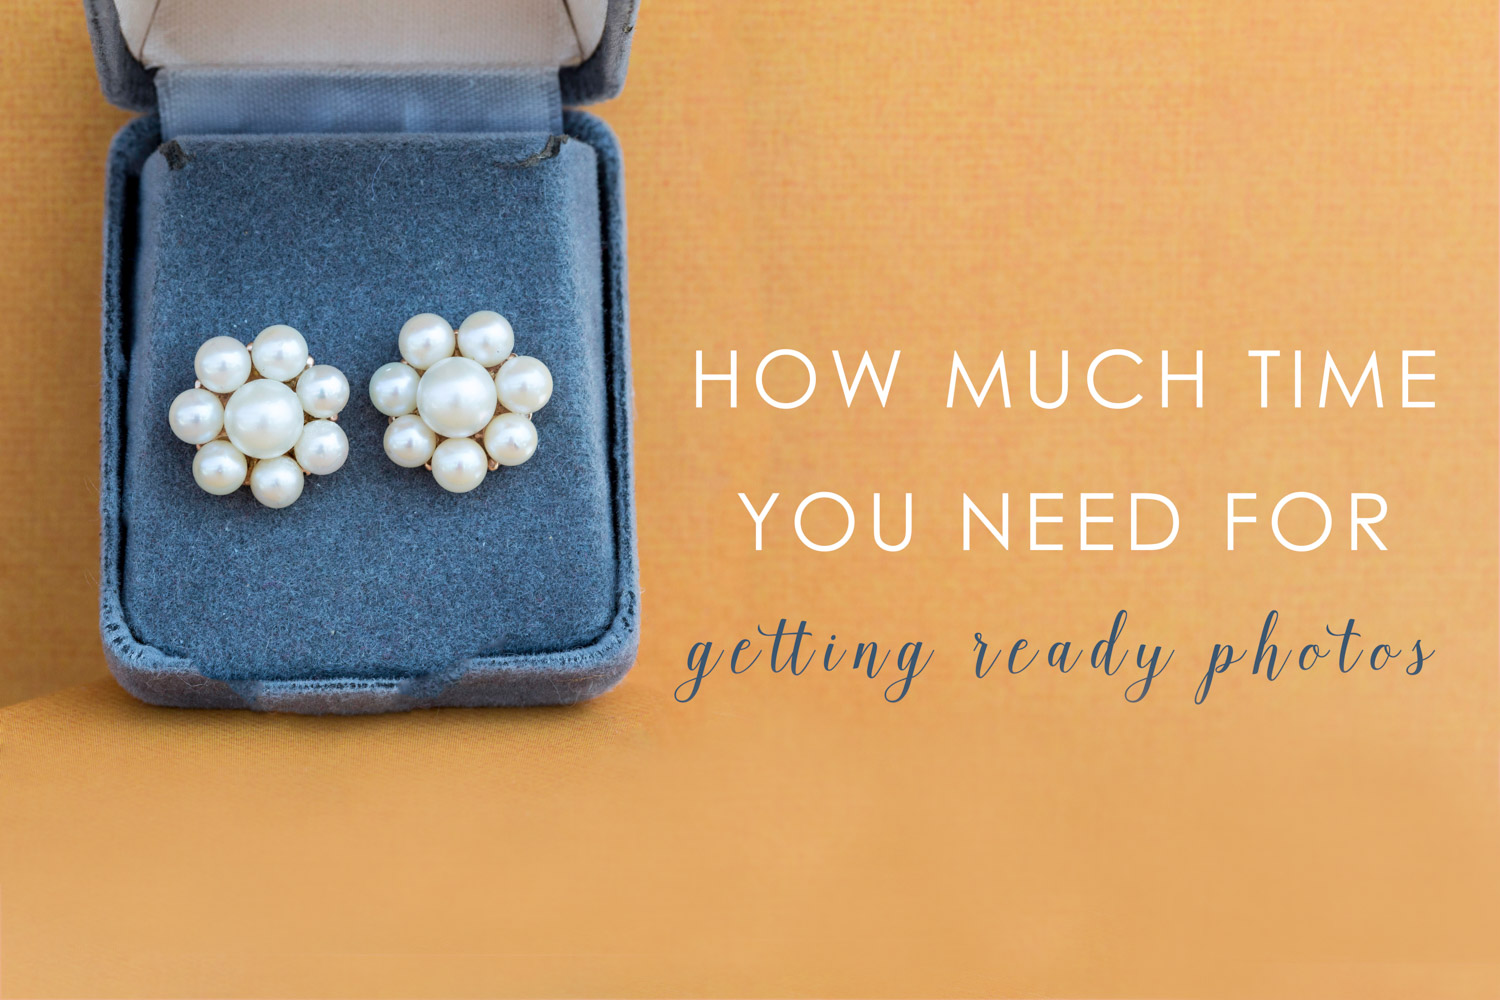 how much time does my photographer need for getting ready photos for my wedding, how much time your photographer need for getting ready photos, cavin elizabeth